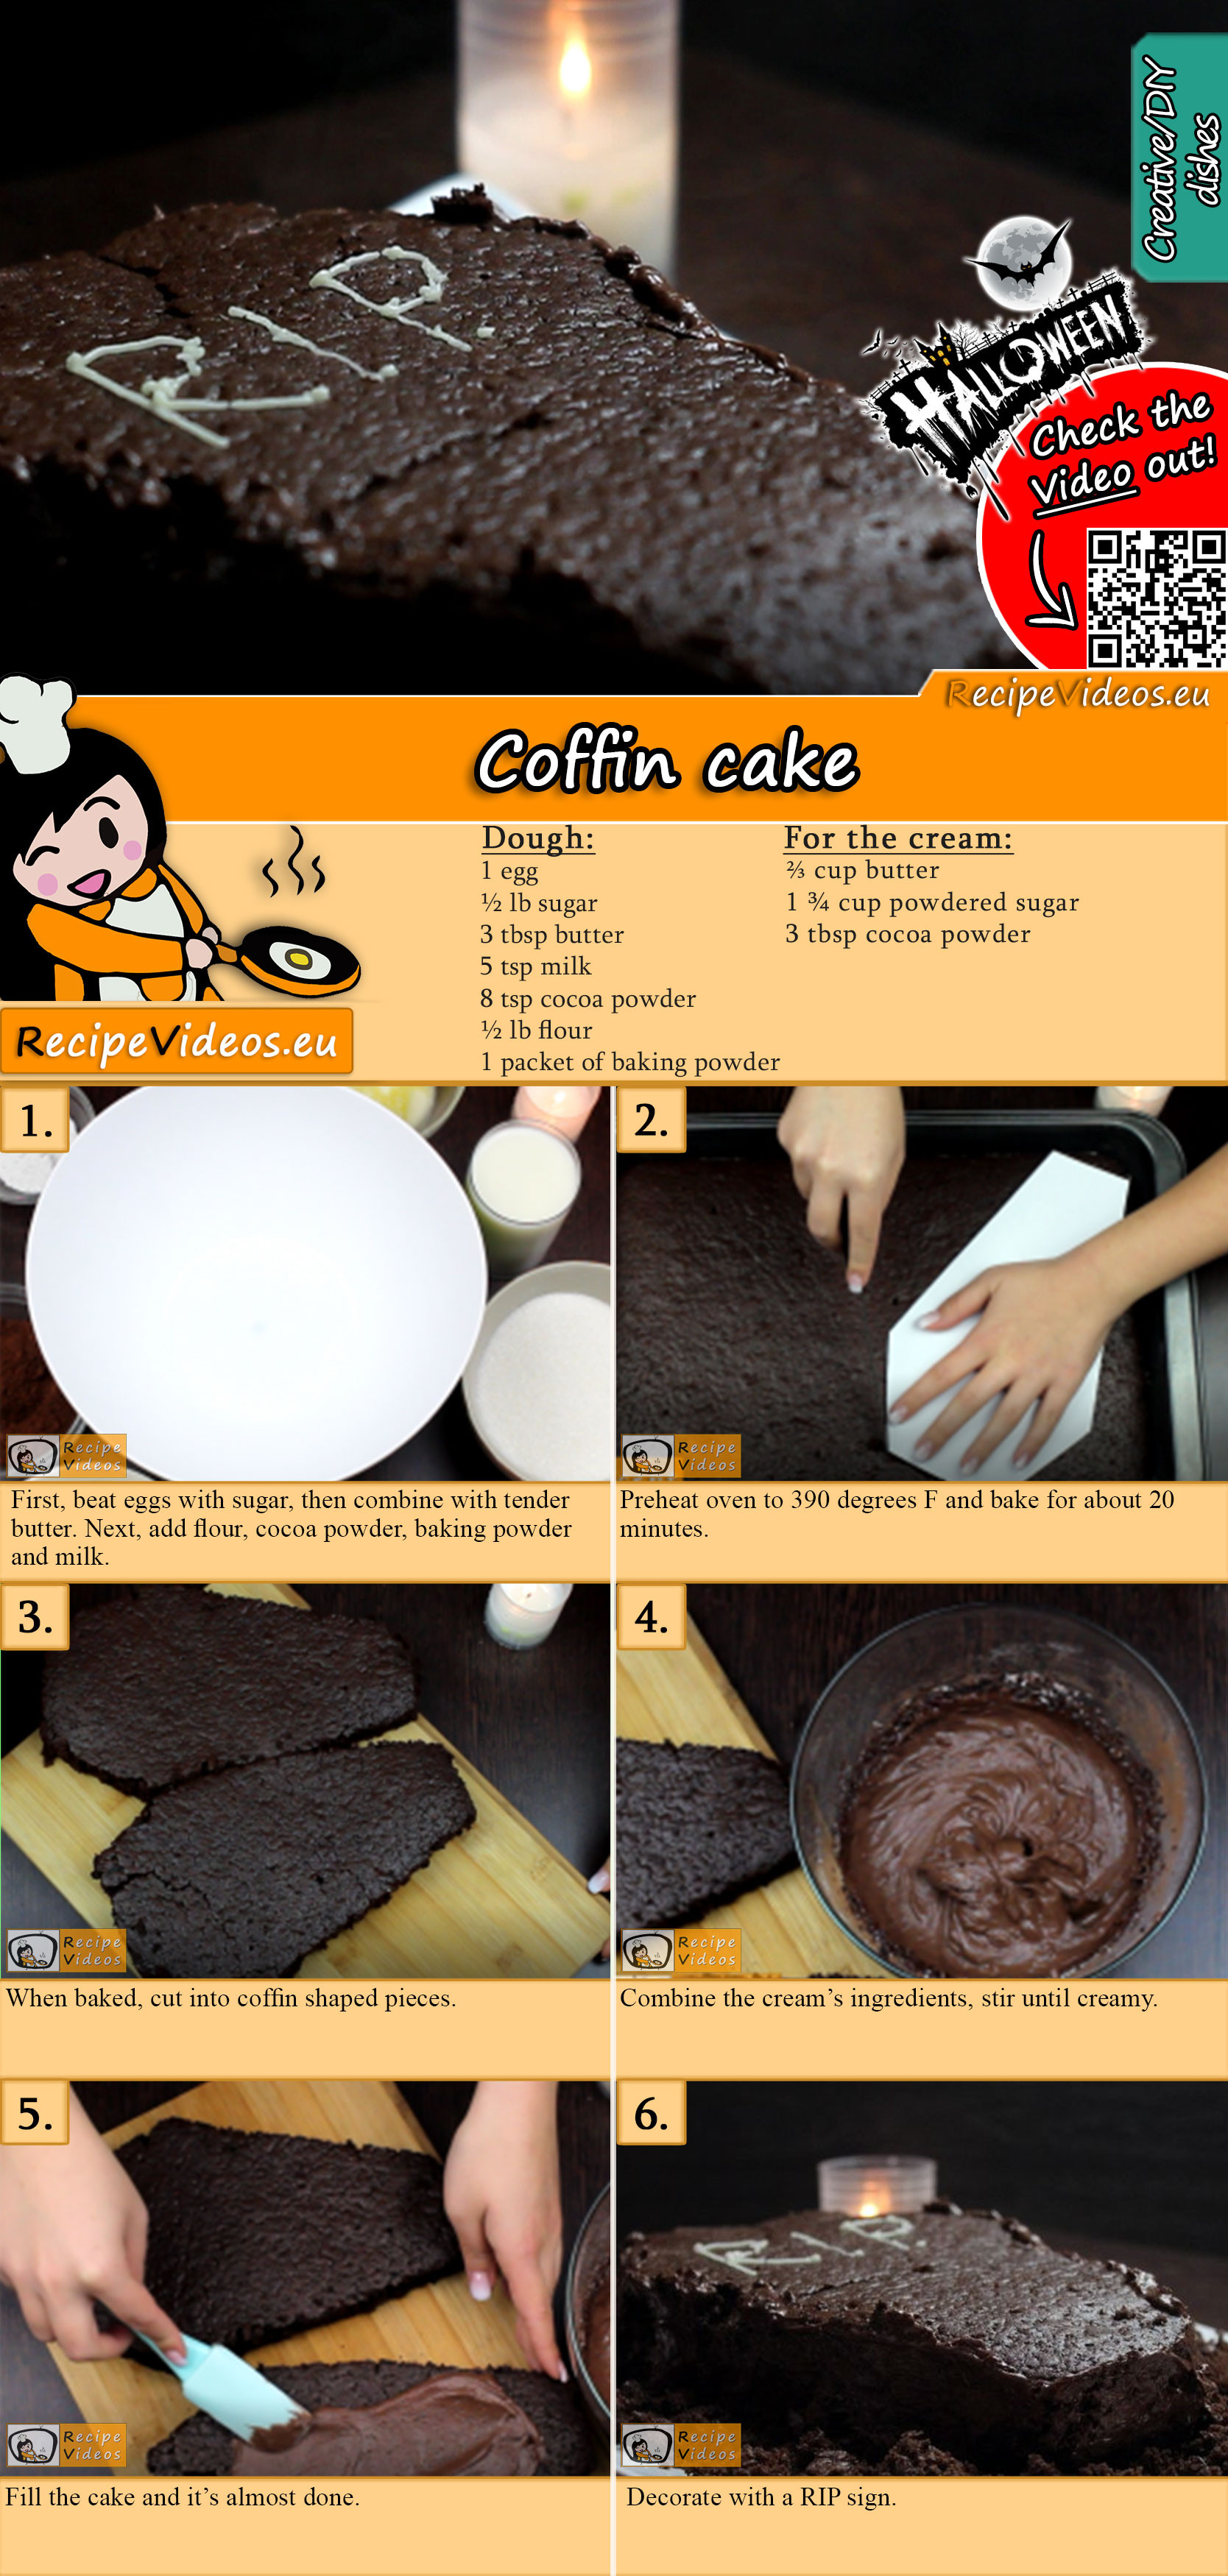 Coffin cake recipe with video